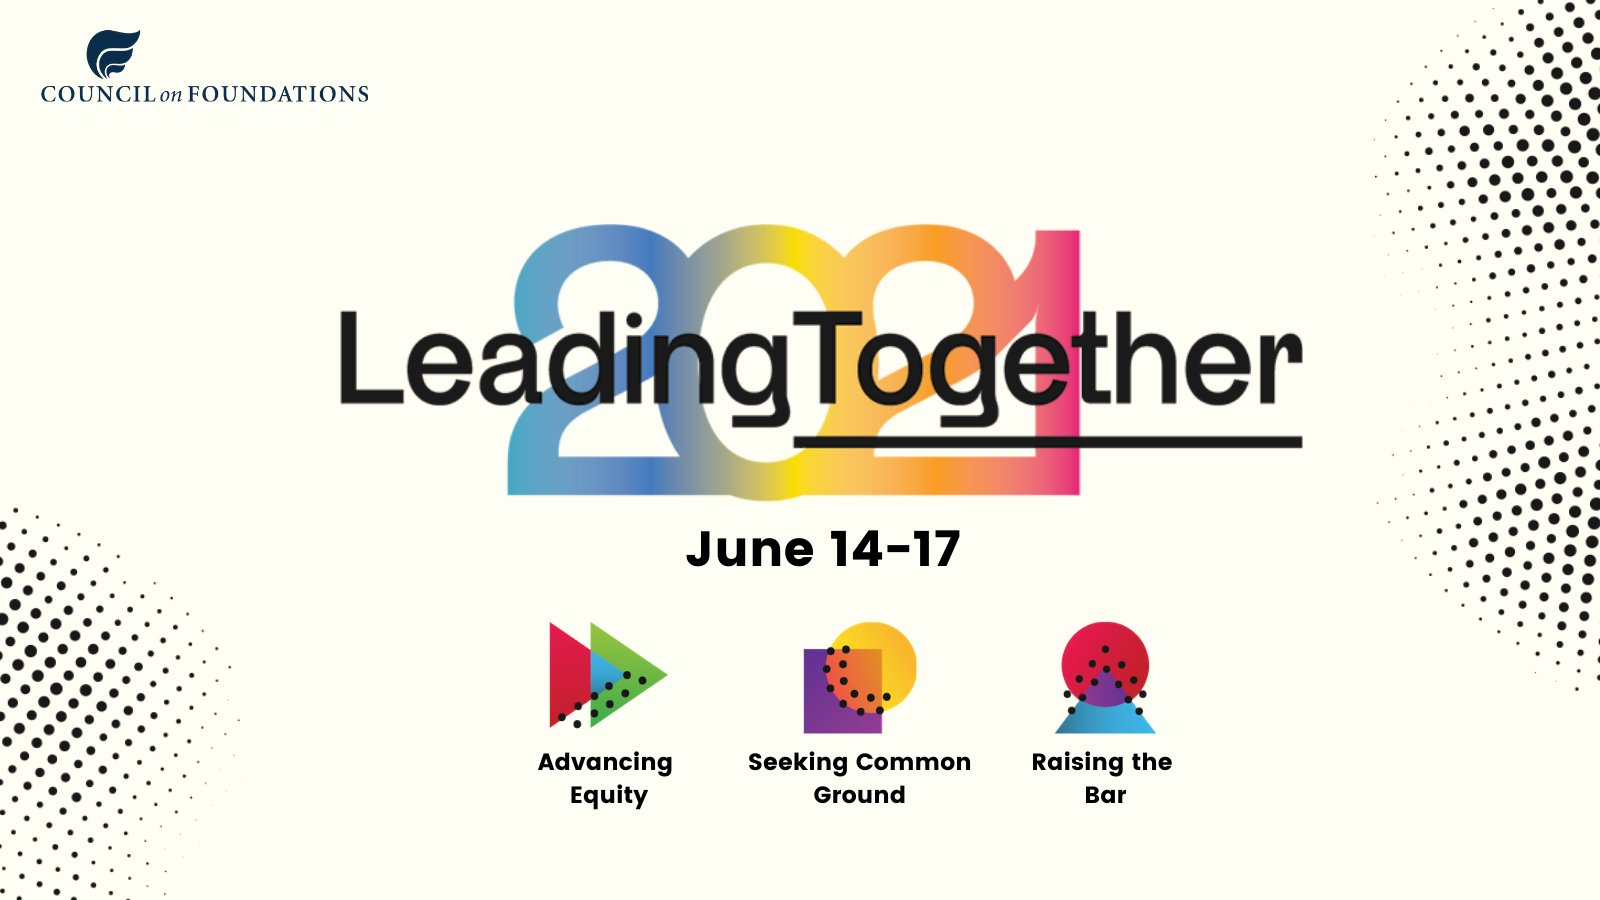 Council on Foundations 2021 Leading Together Virtual Conference